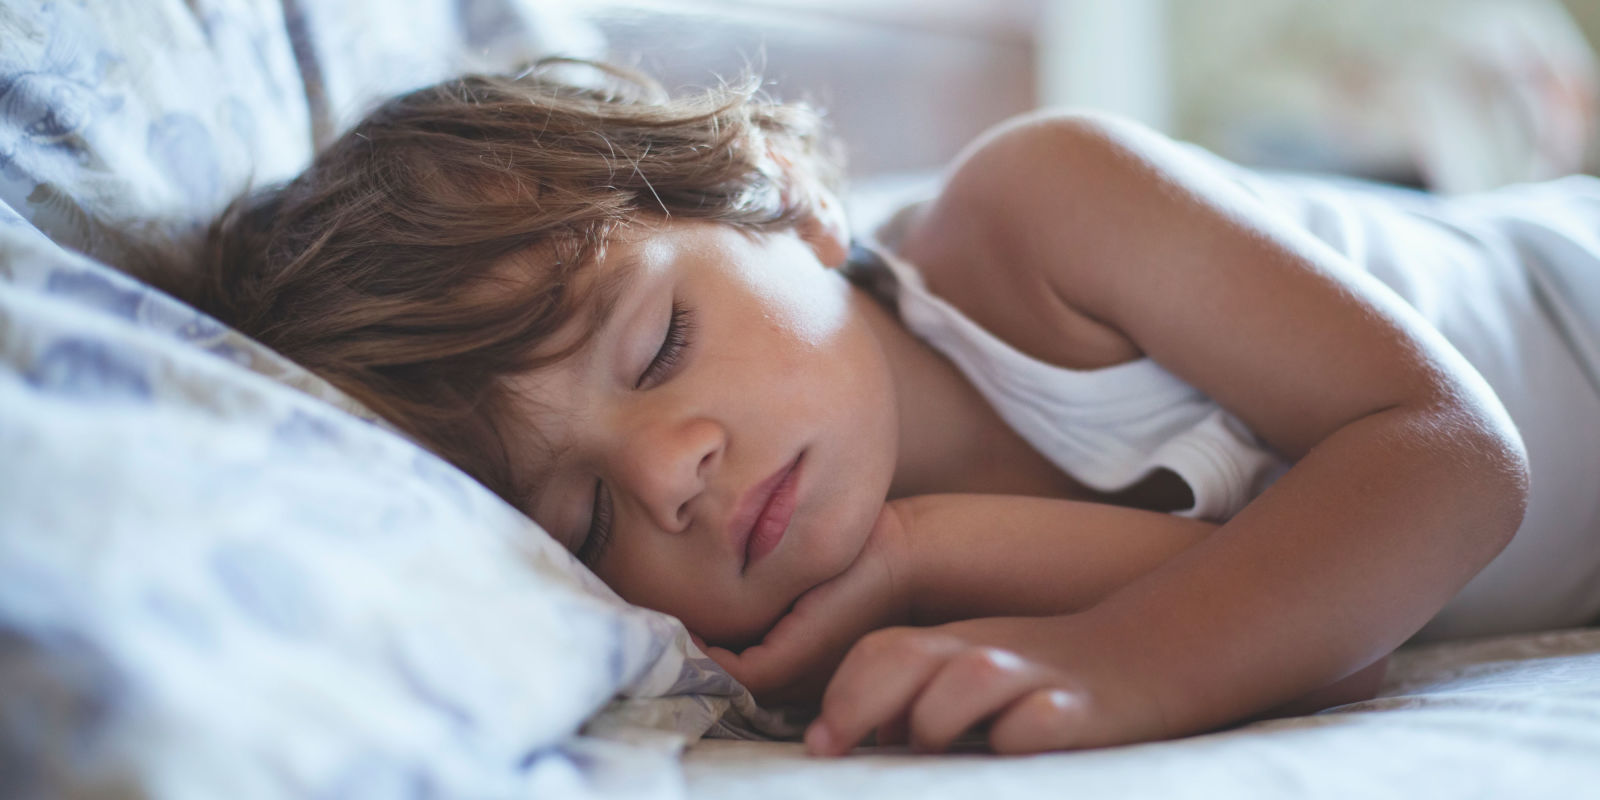 When Should Toddler Sleep In Bed